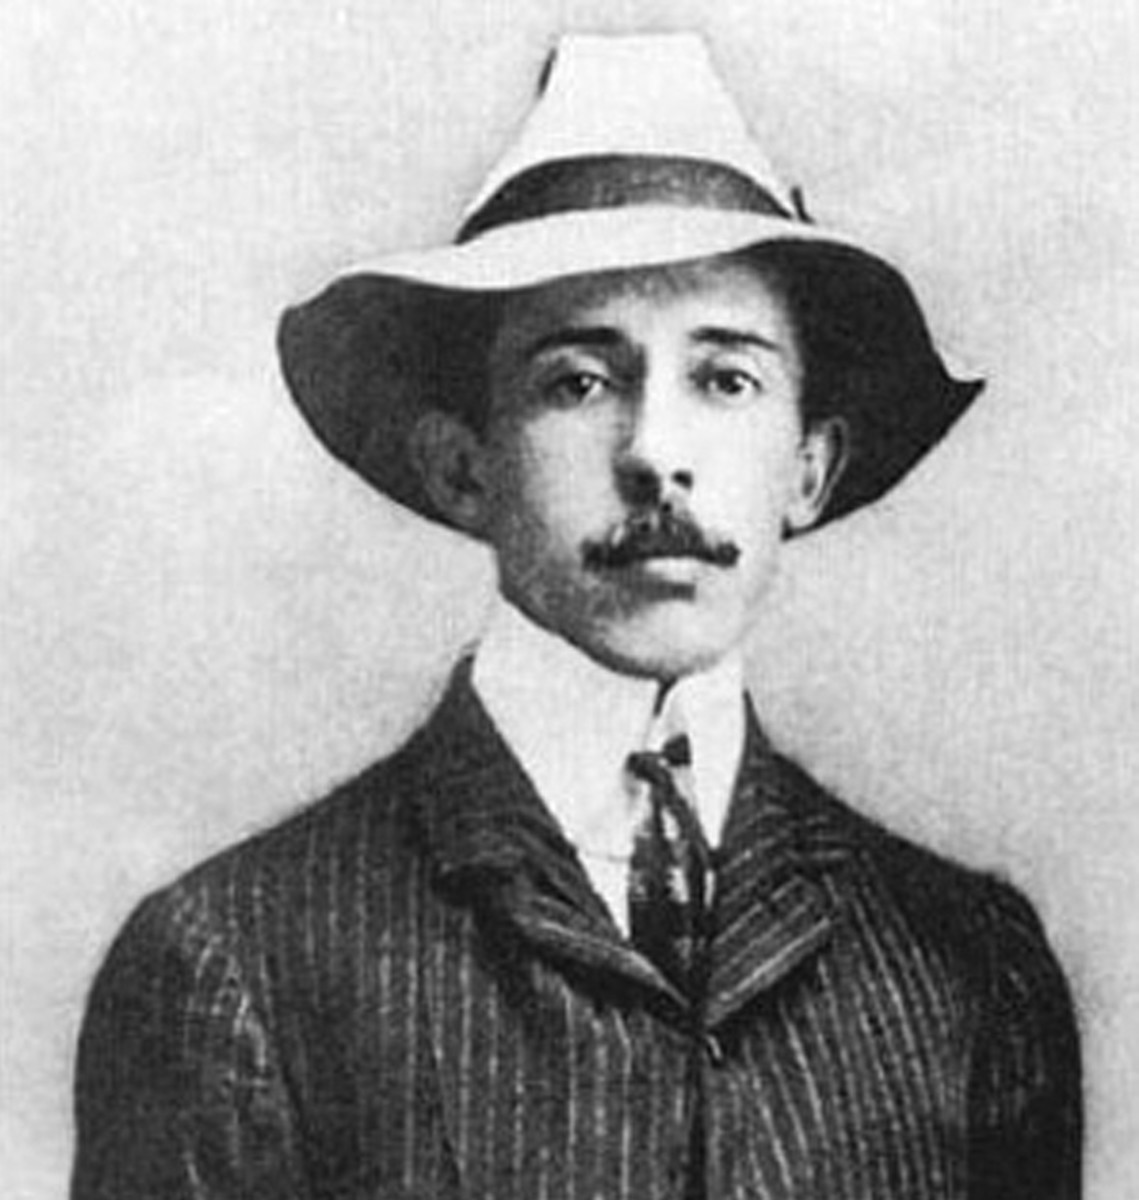 Alberto Santos-Dumont, a man with more the look of an impressionist painter than a daring aviator.